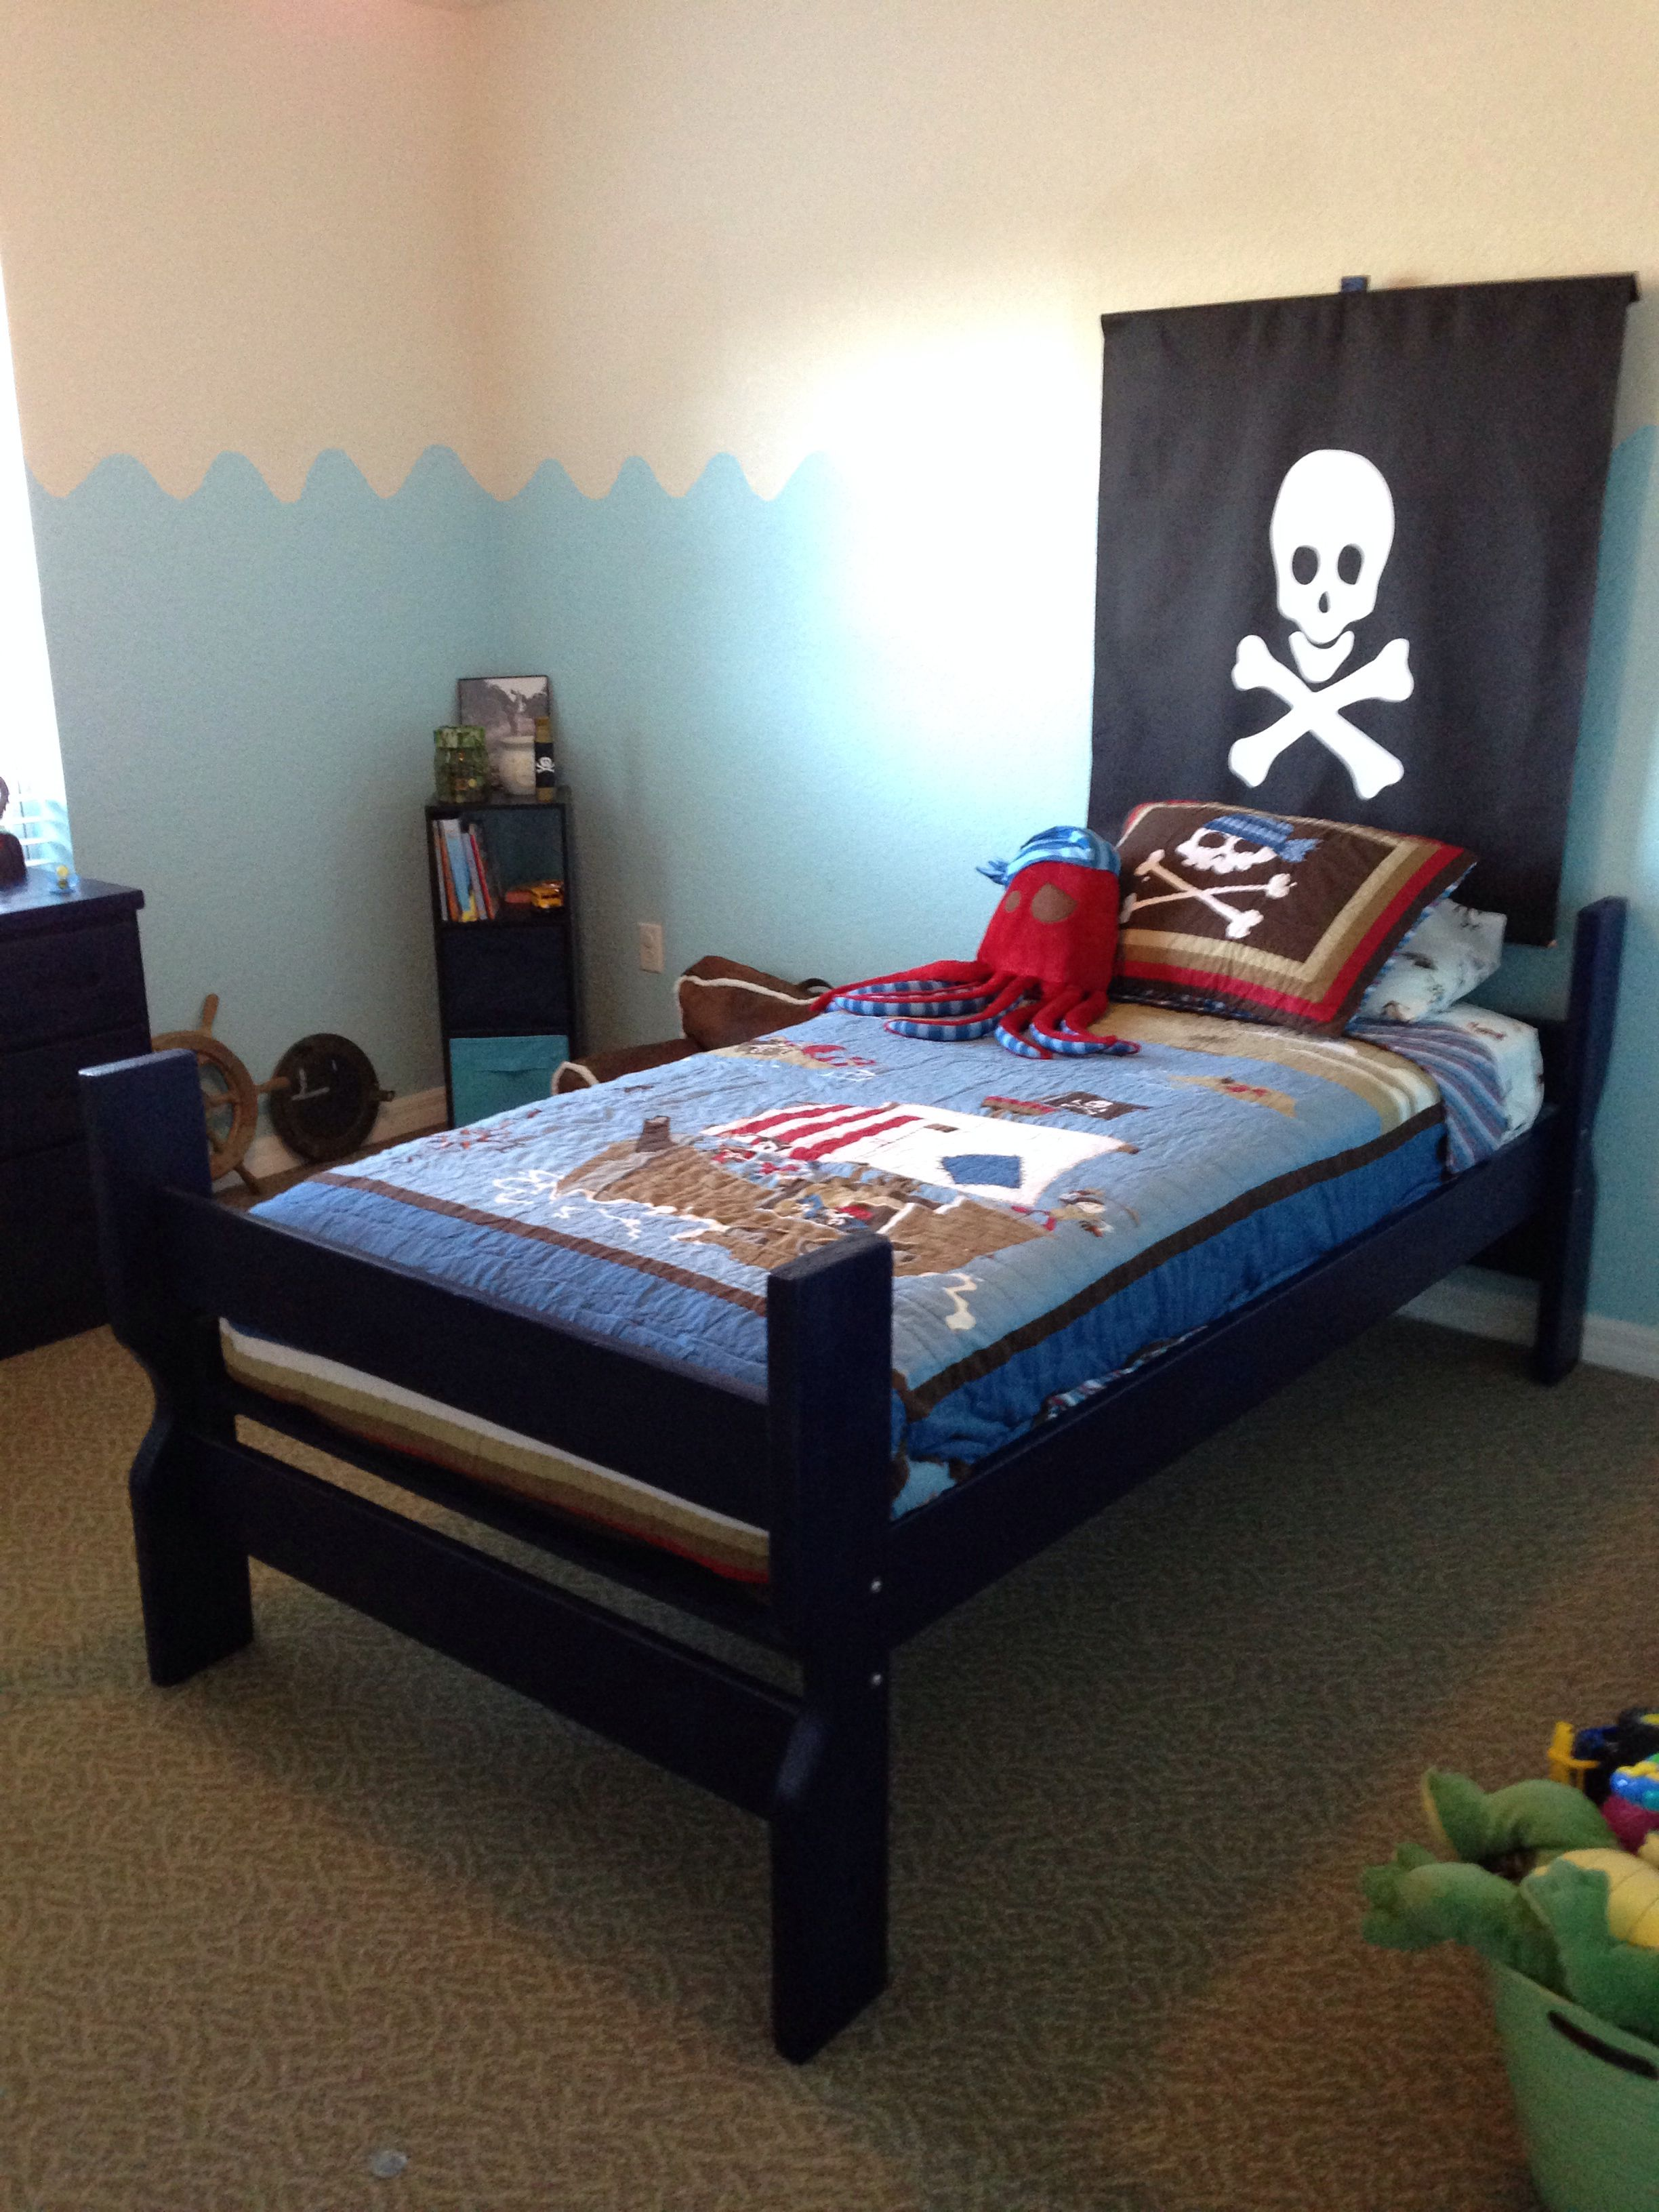 DIY pirate flag bed- skull & crossbones wall decal, a $5 piece if fabric and two wooden dowels. Just place decal on fabric and sew the top and bottom just enough that the dowels will go through. Then nail it to a long piece of wood, that you can screw into the back of the bed!